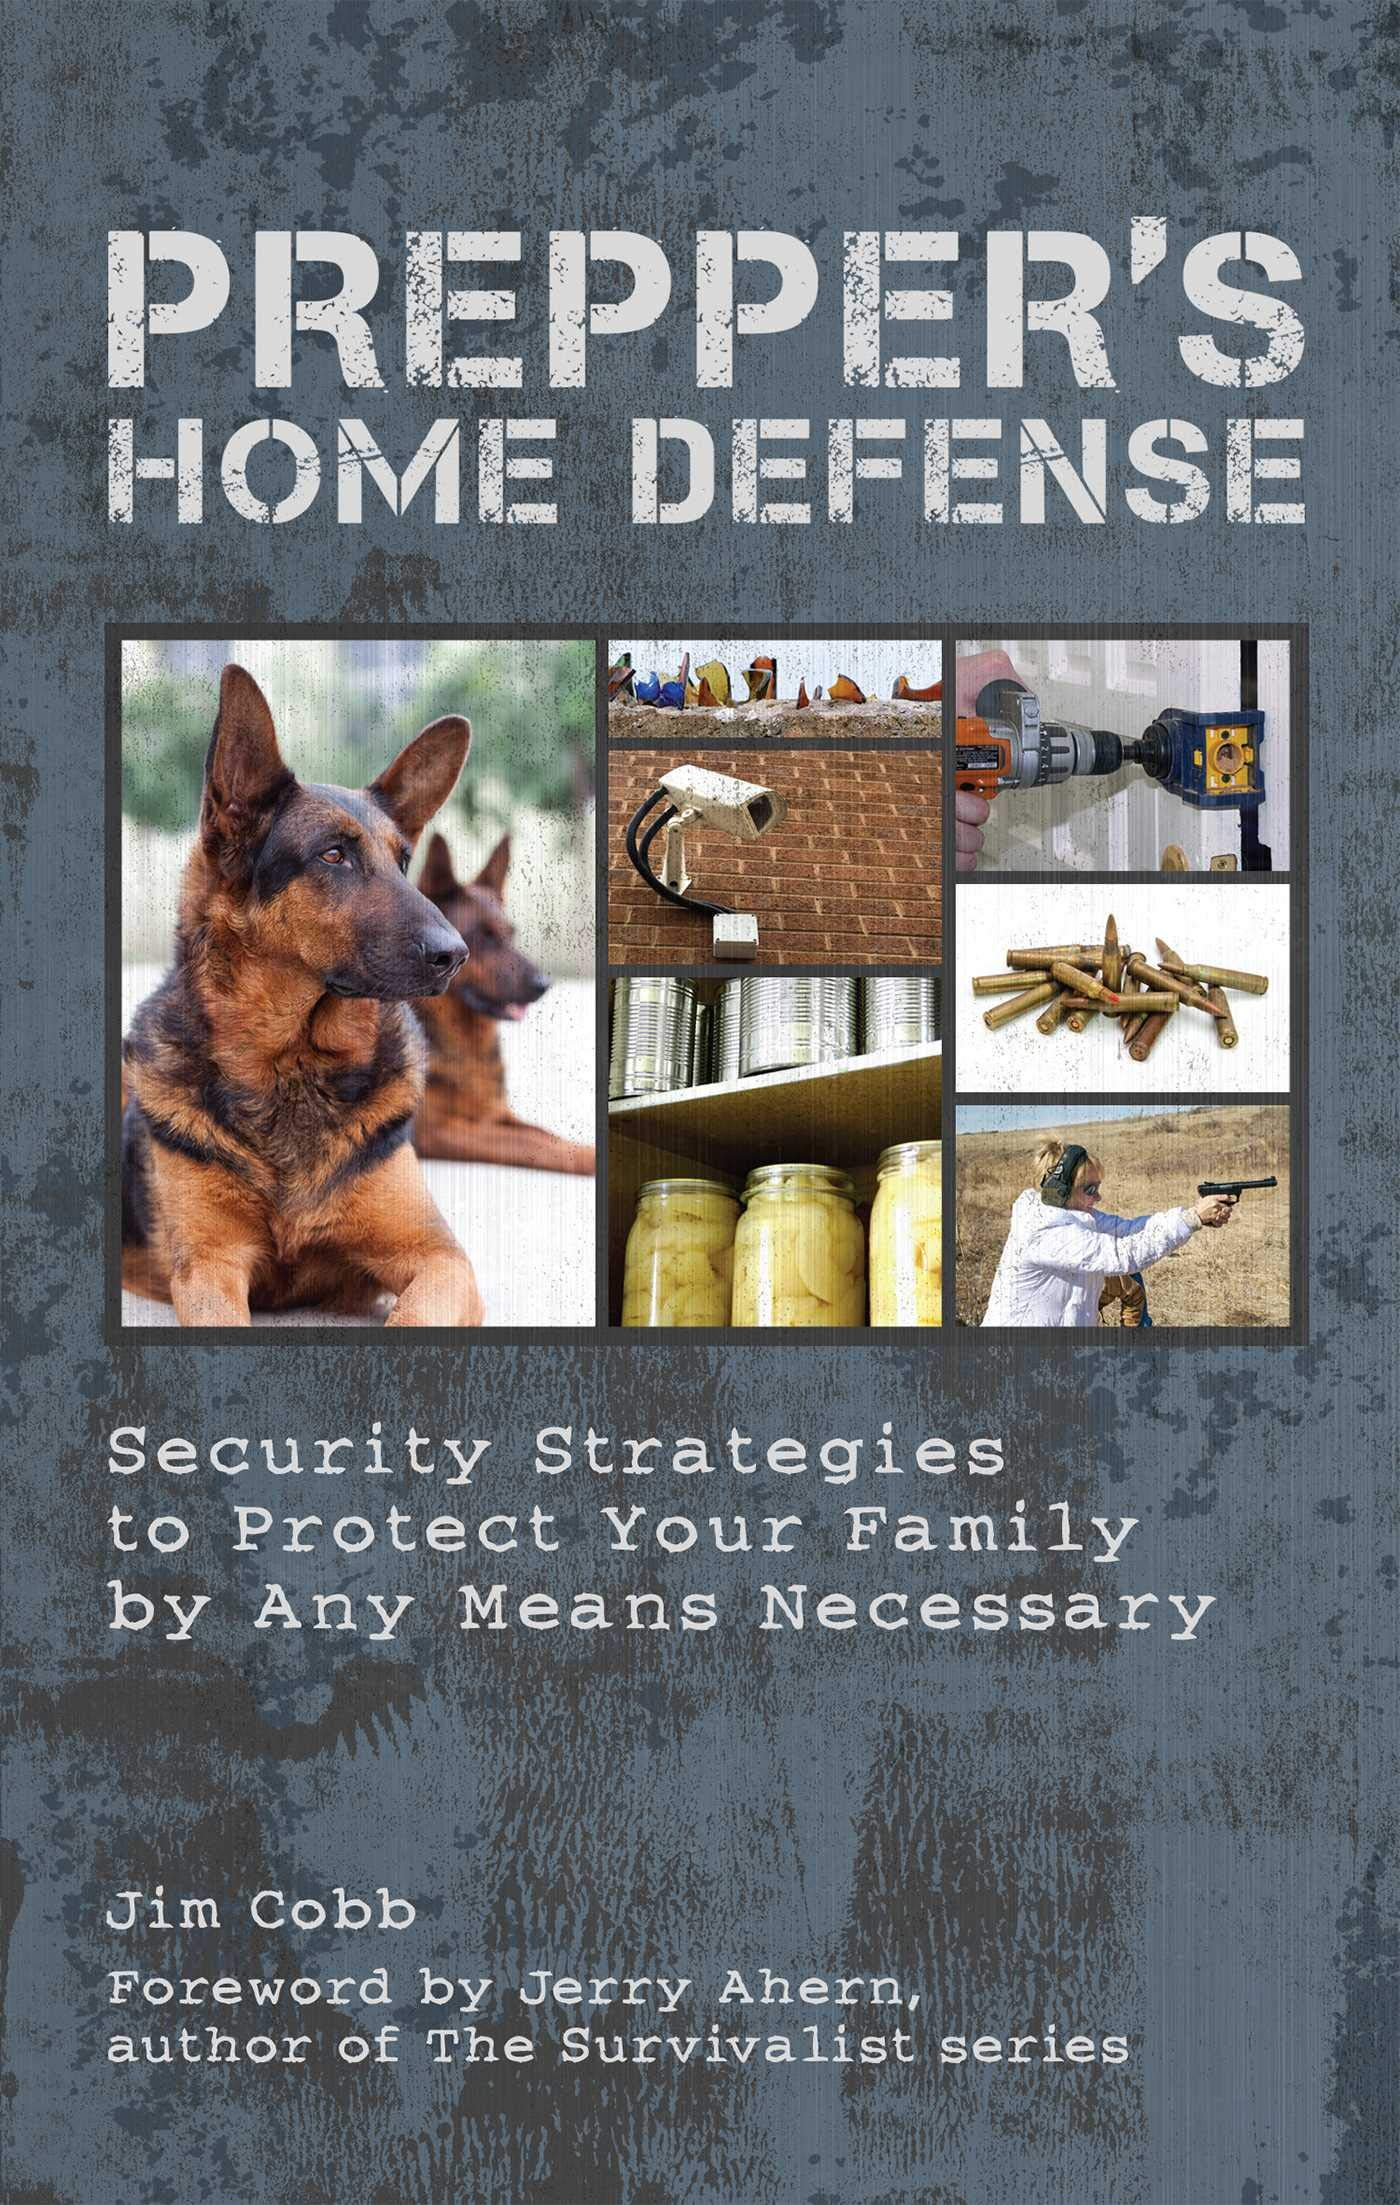 Prepper's Home Defense: Security Strategies to Protect Your Family by way of Any Means Necessary